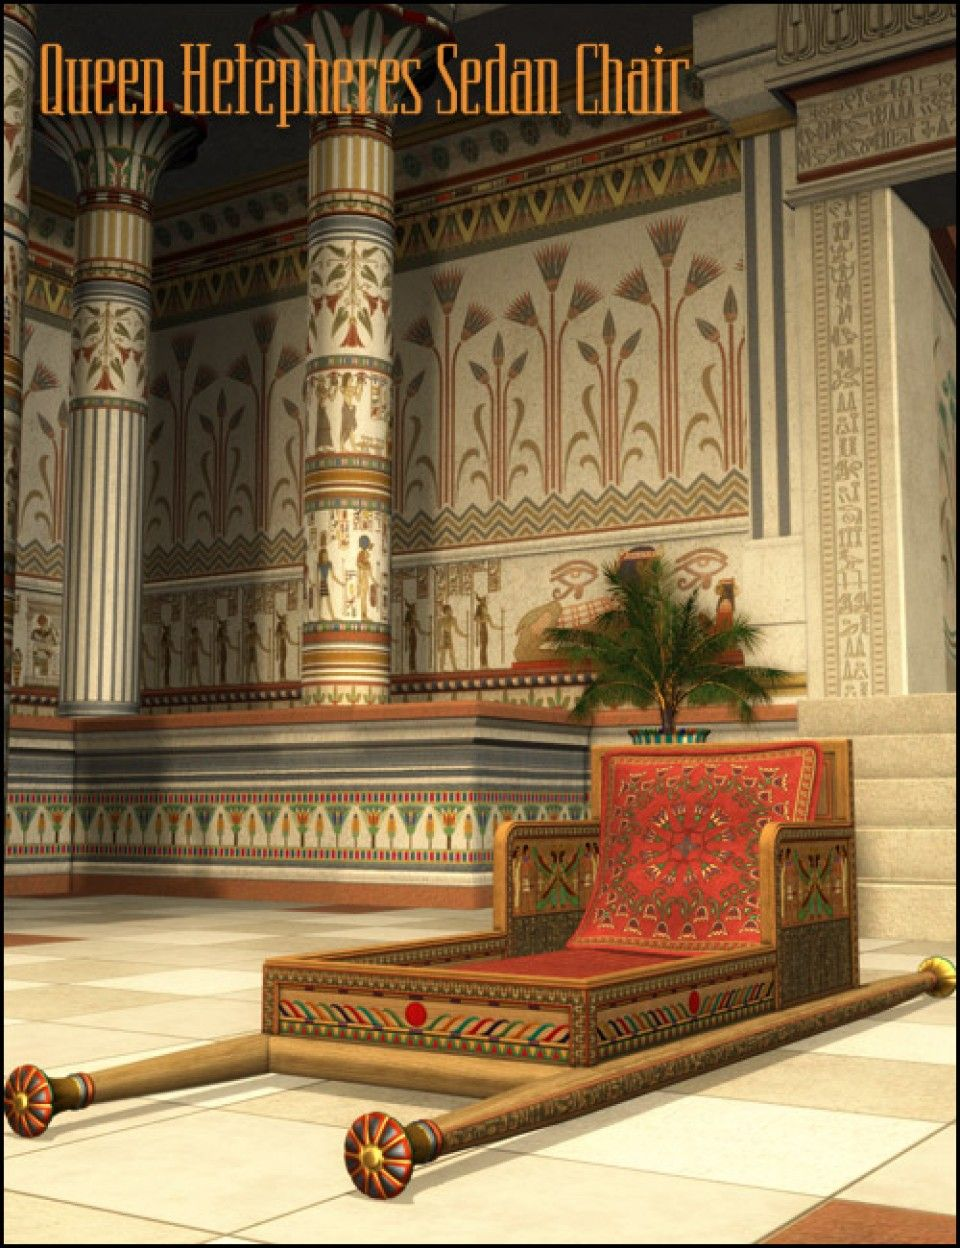 Ancient egyptian furniture - Queen Hetepheres Sedan Chair In Places And Things Props Furniture Models By Daz